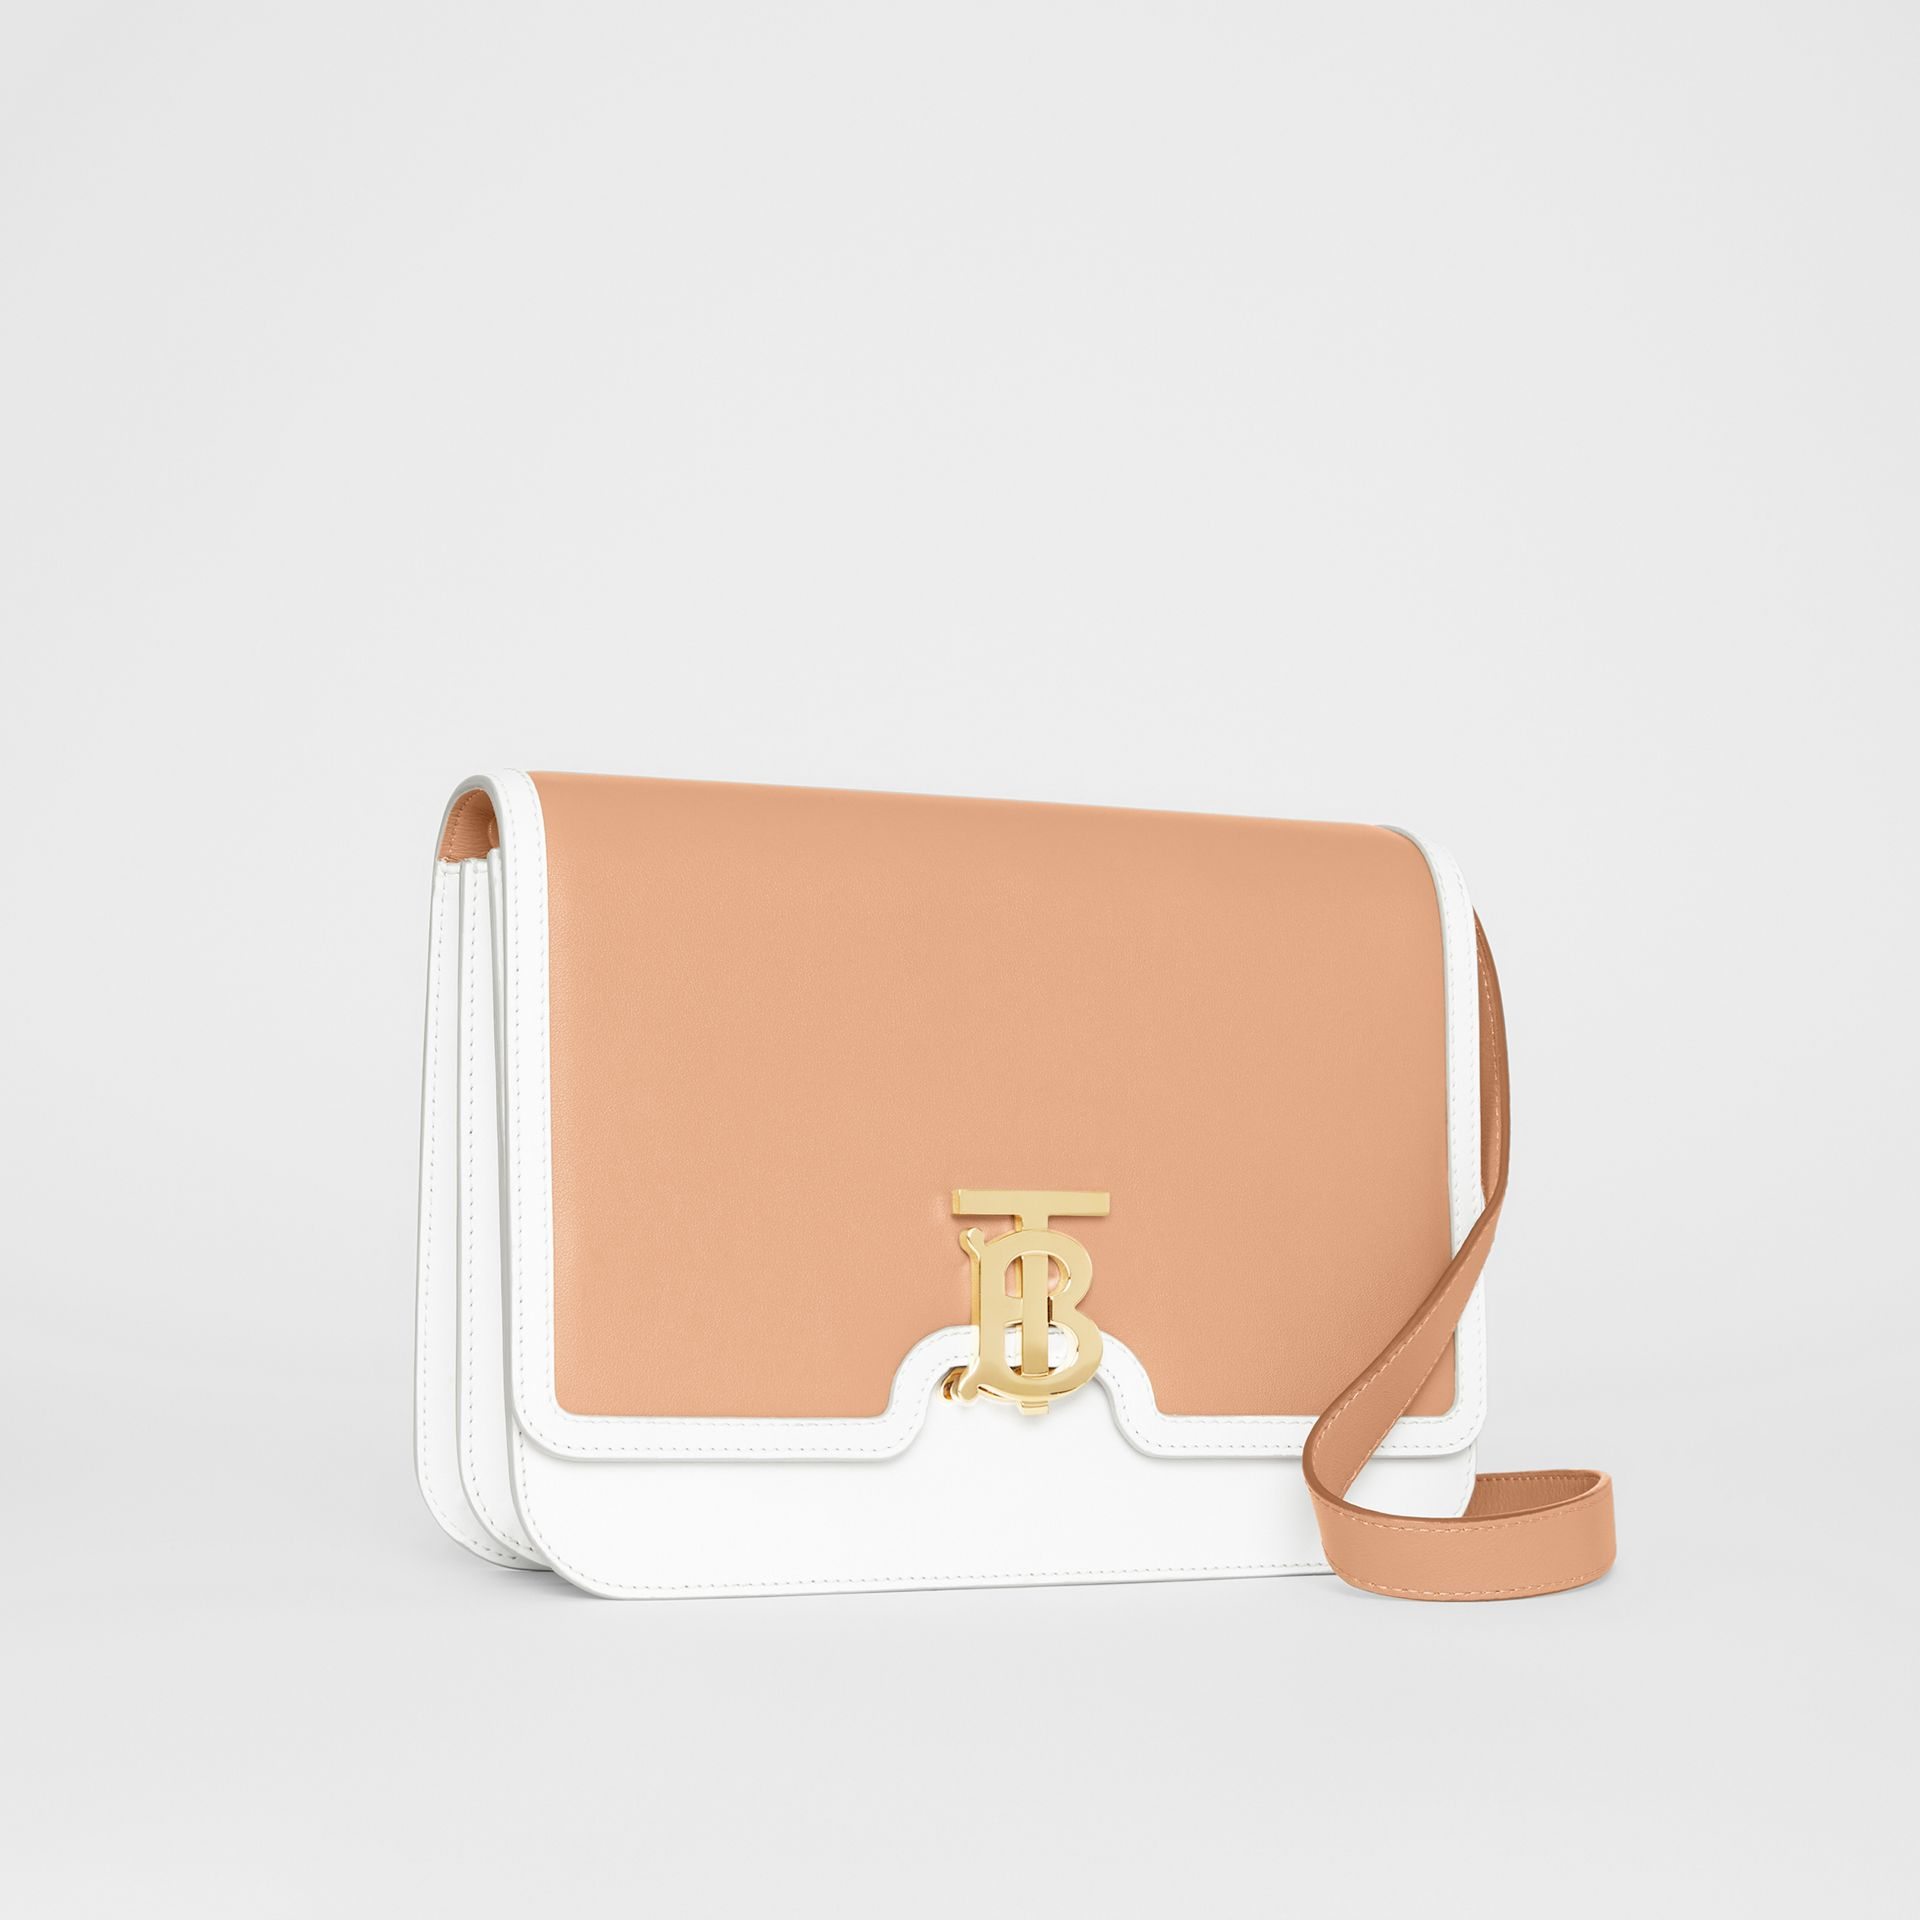 Medium Two-tone Leather TB Bag in Chalk White/light Camel - Women | Burberry - gallery image 6